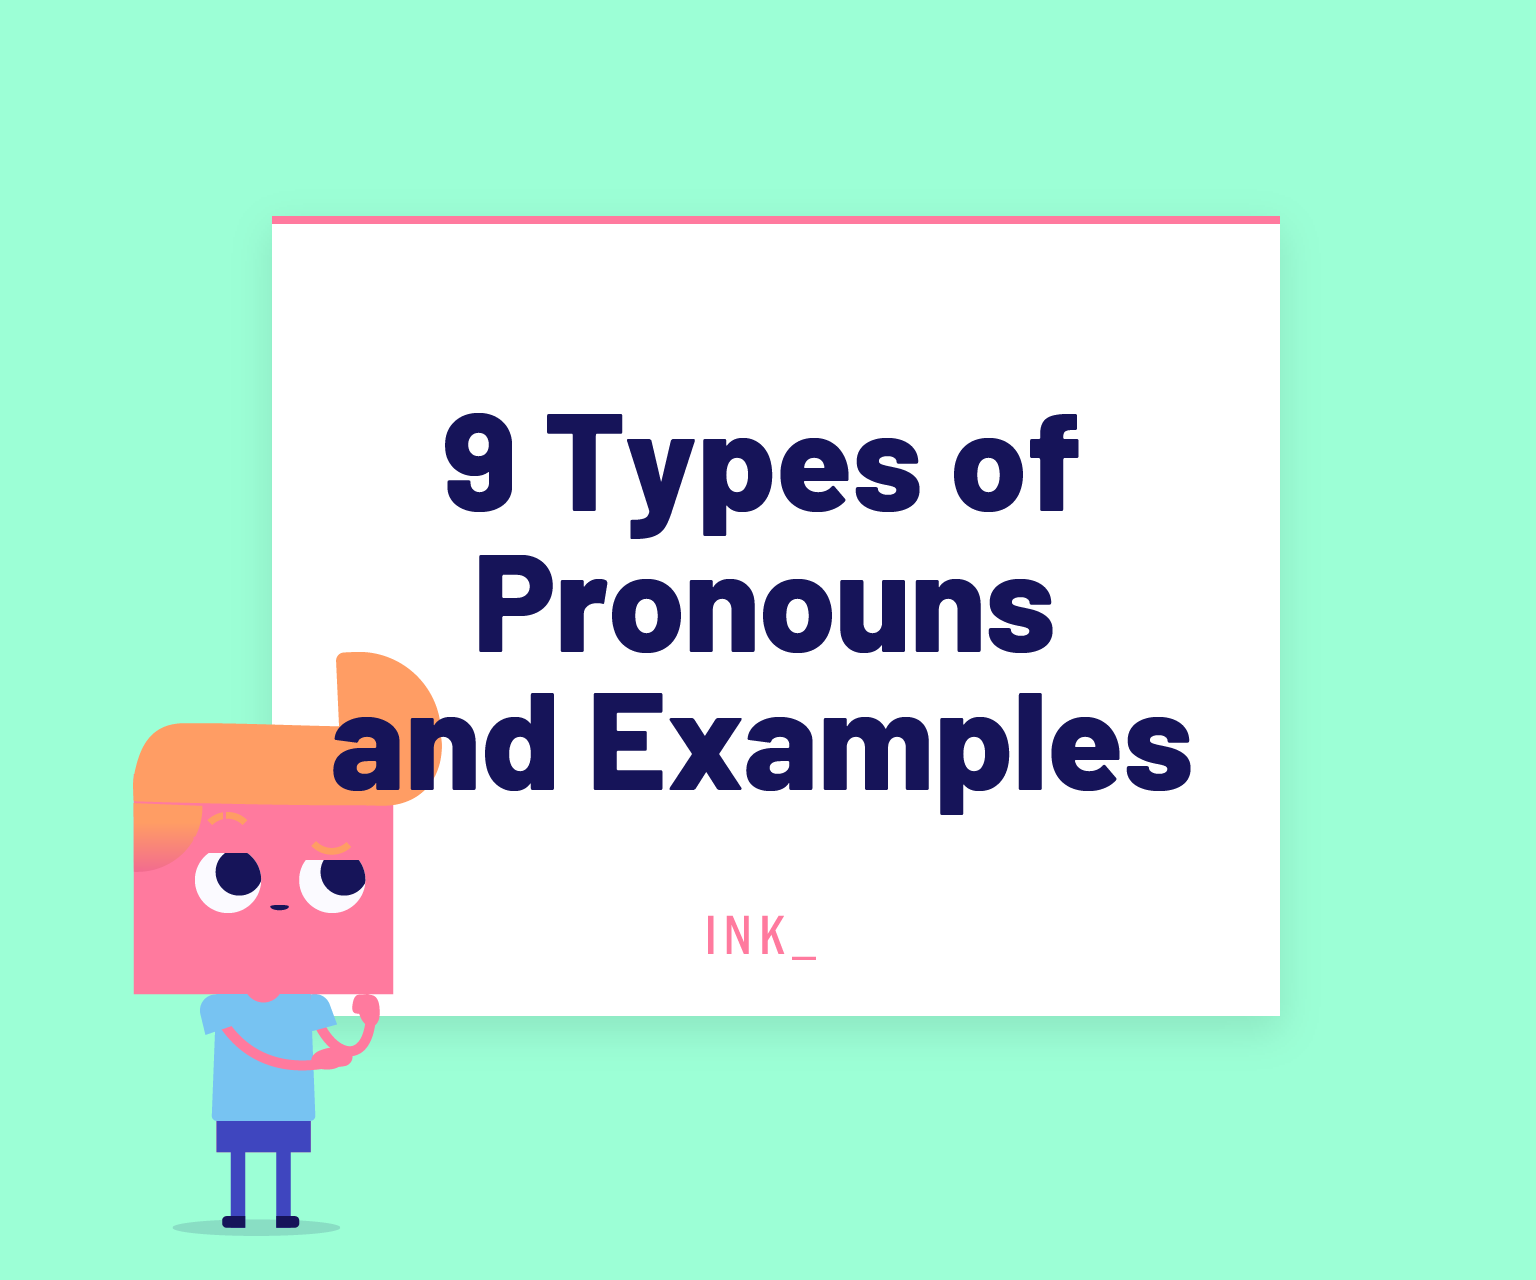 Nine types of pronouns and examples